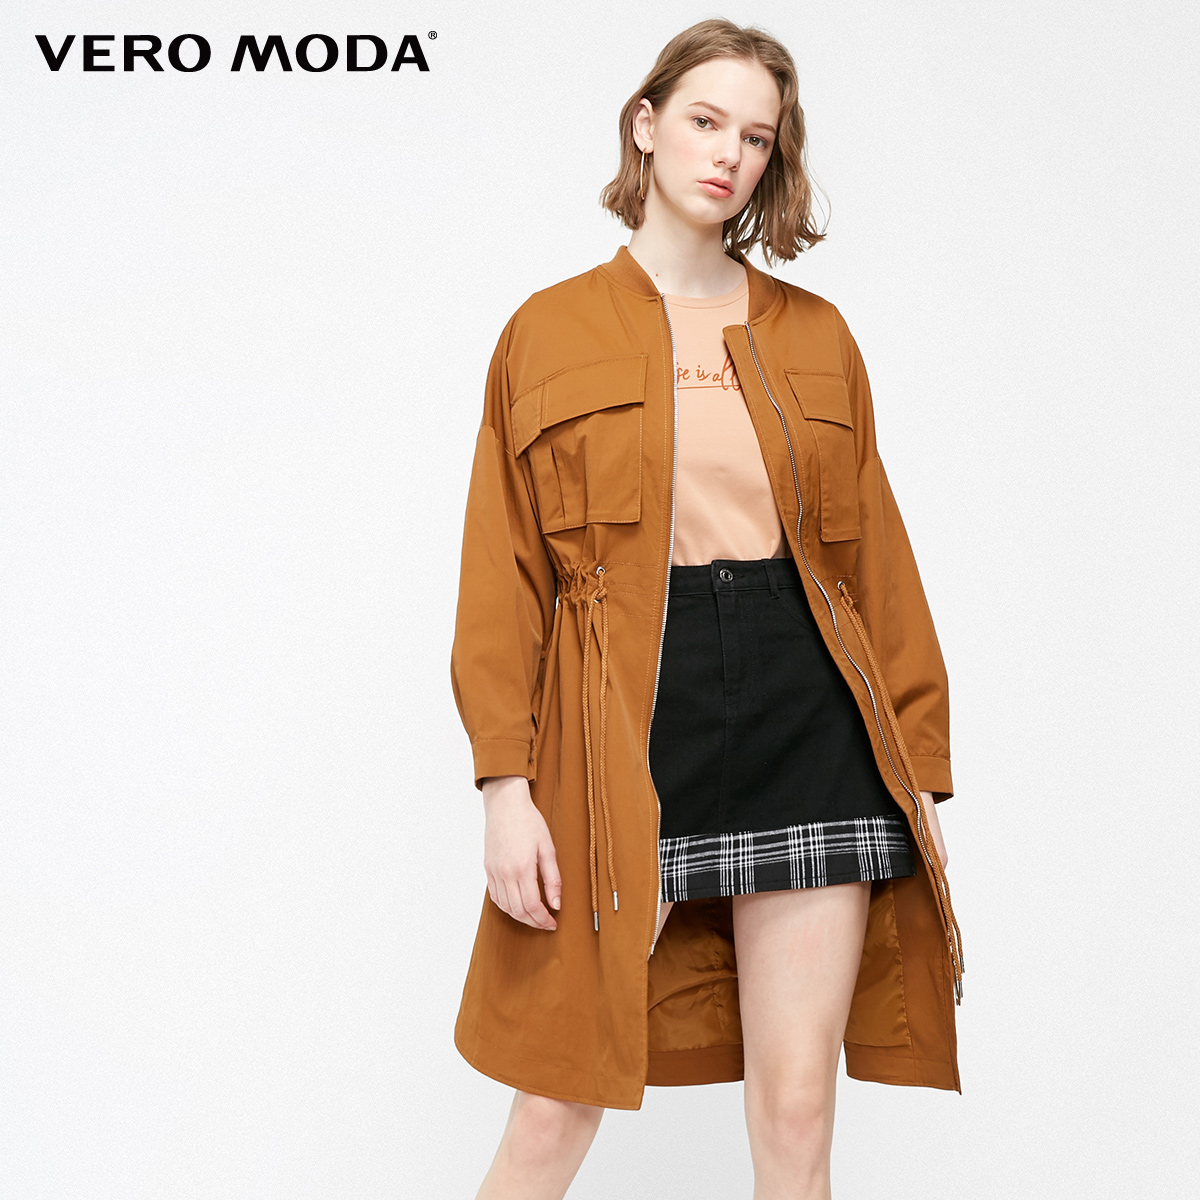 Vero Moda Women's Streetwear Waist Drawstring Casual Long Trench Coat | 319121542